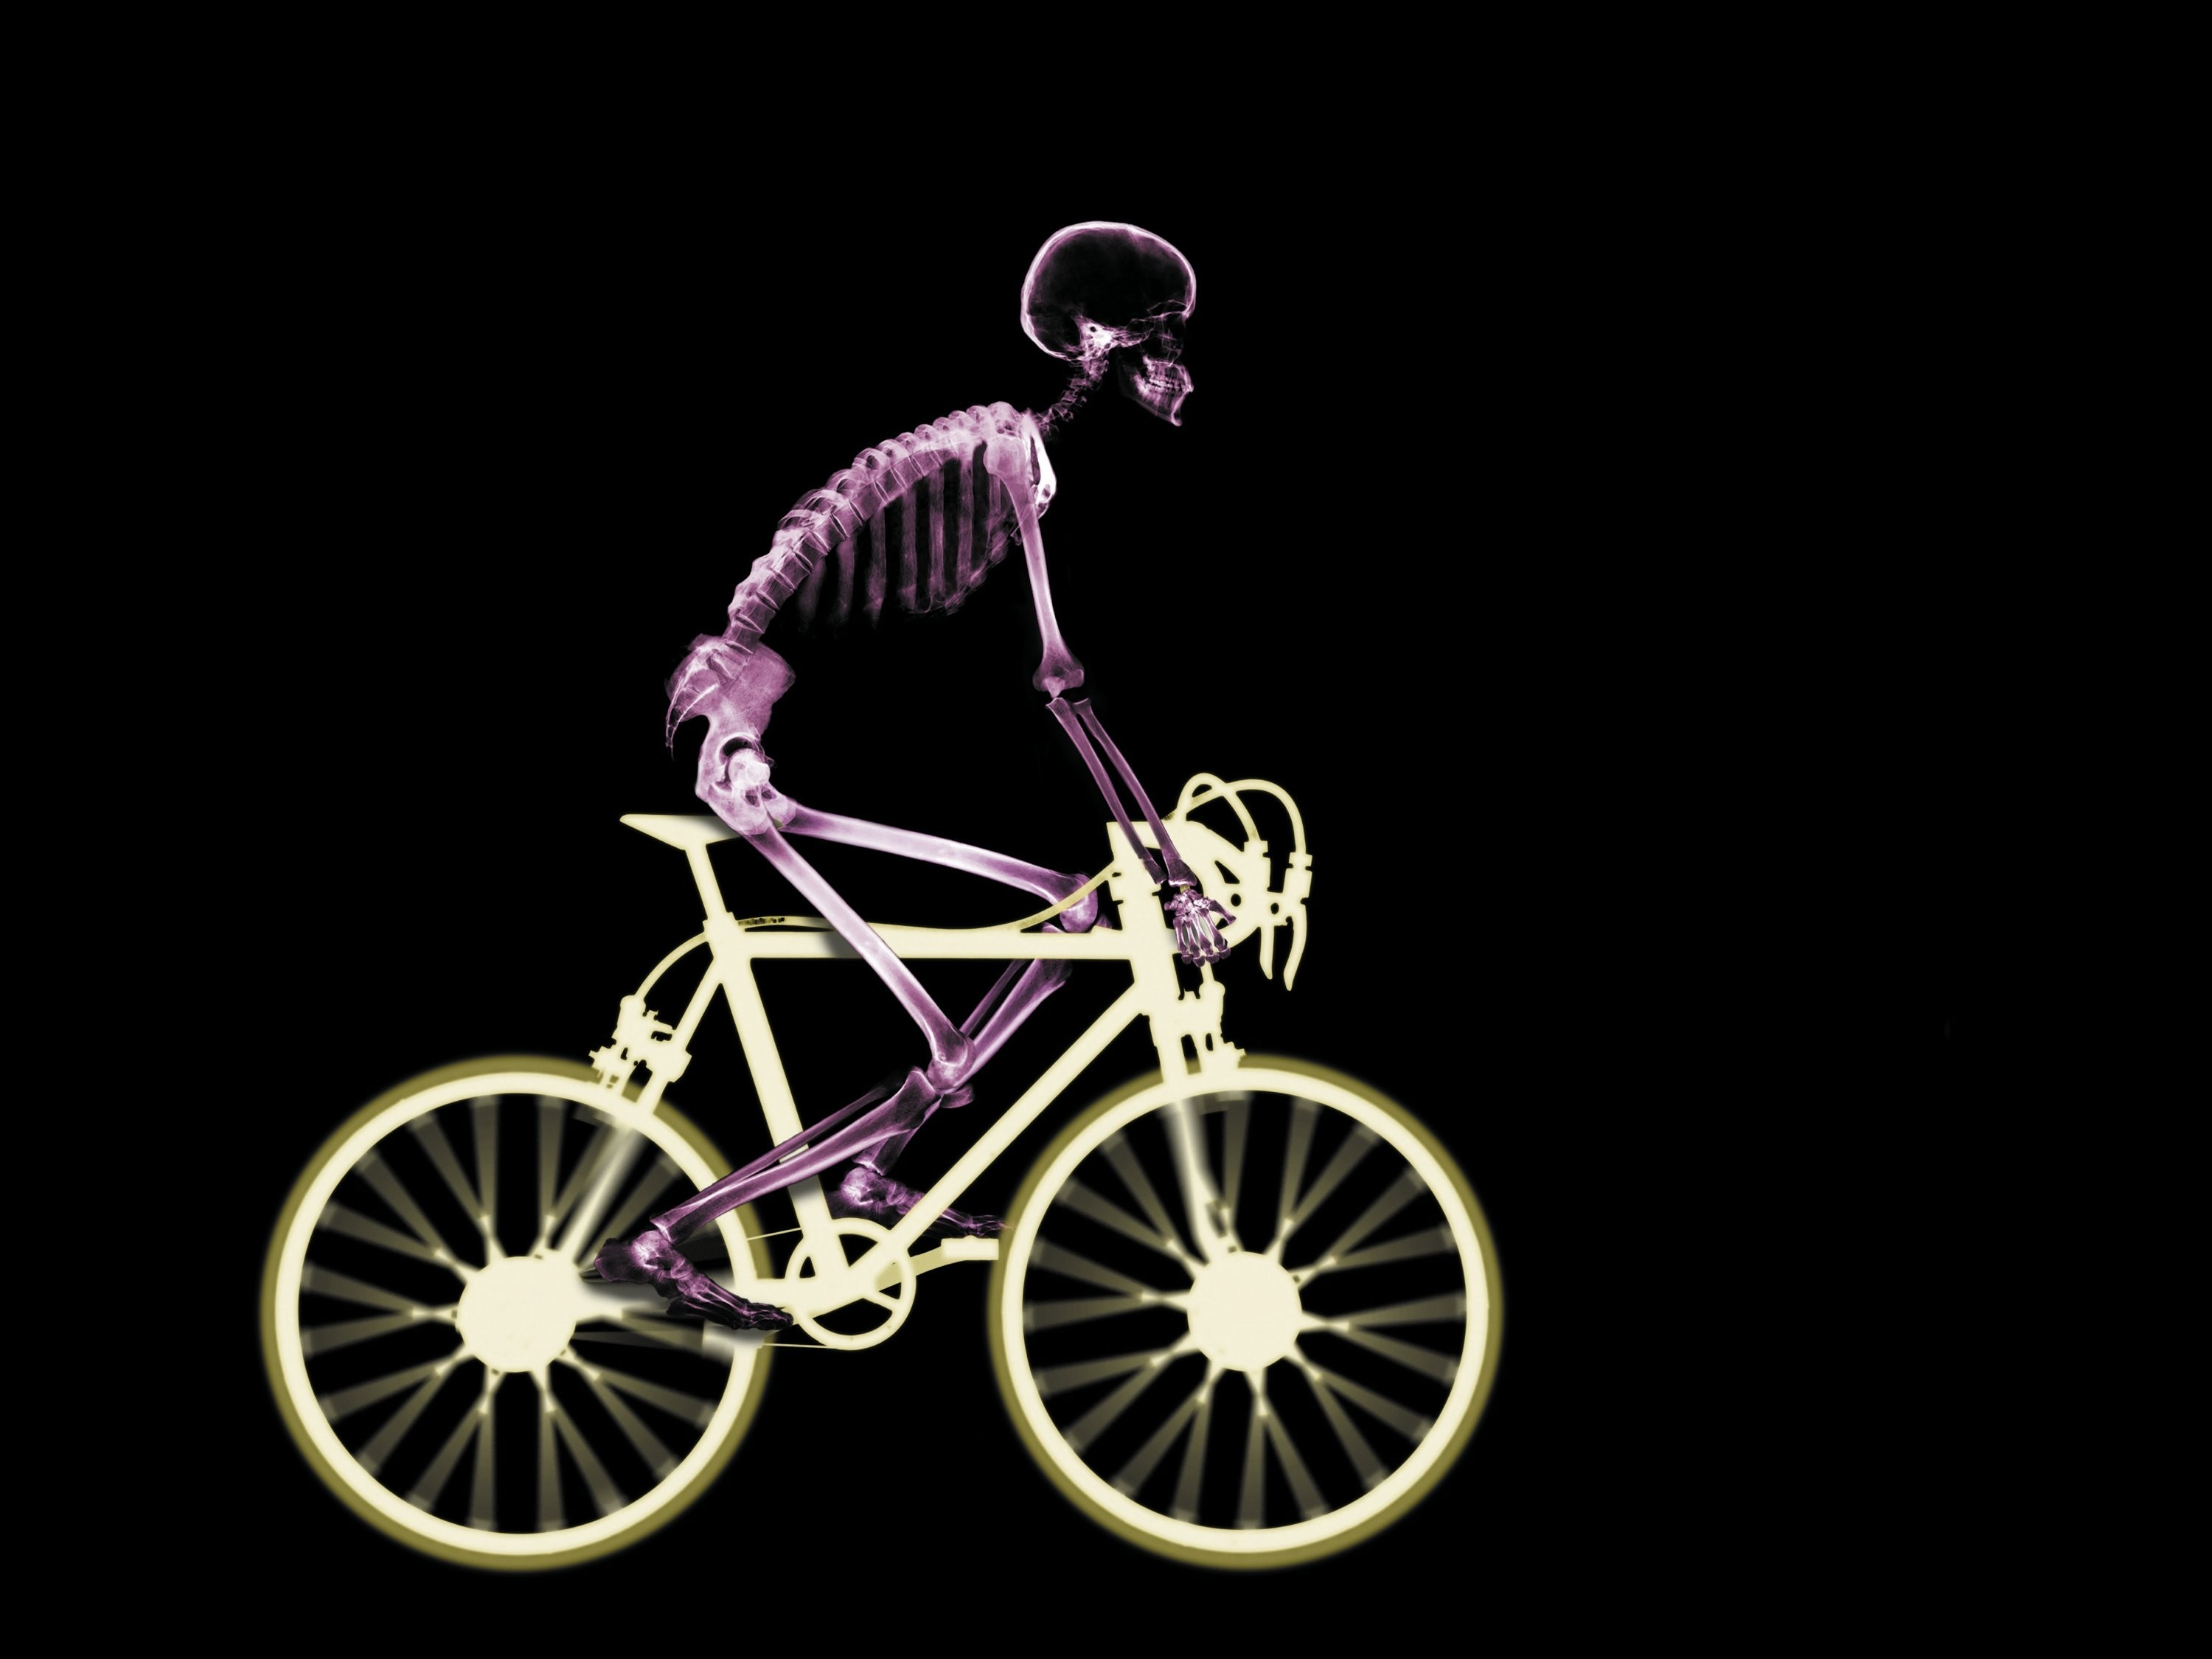 x-rays, texture, background, download photo, bike x-ray texture background